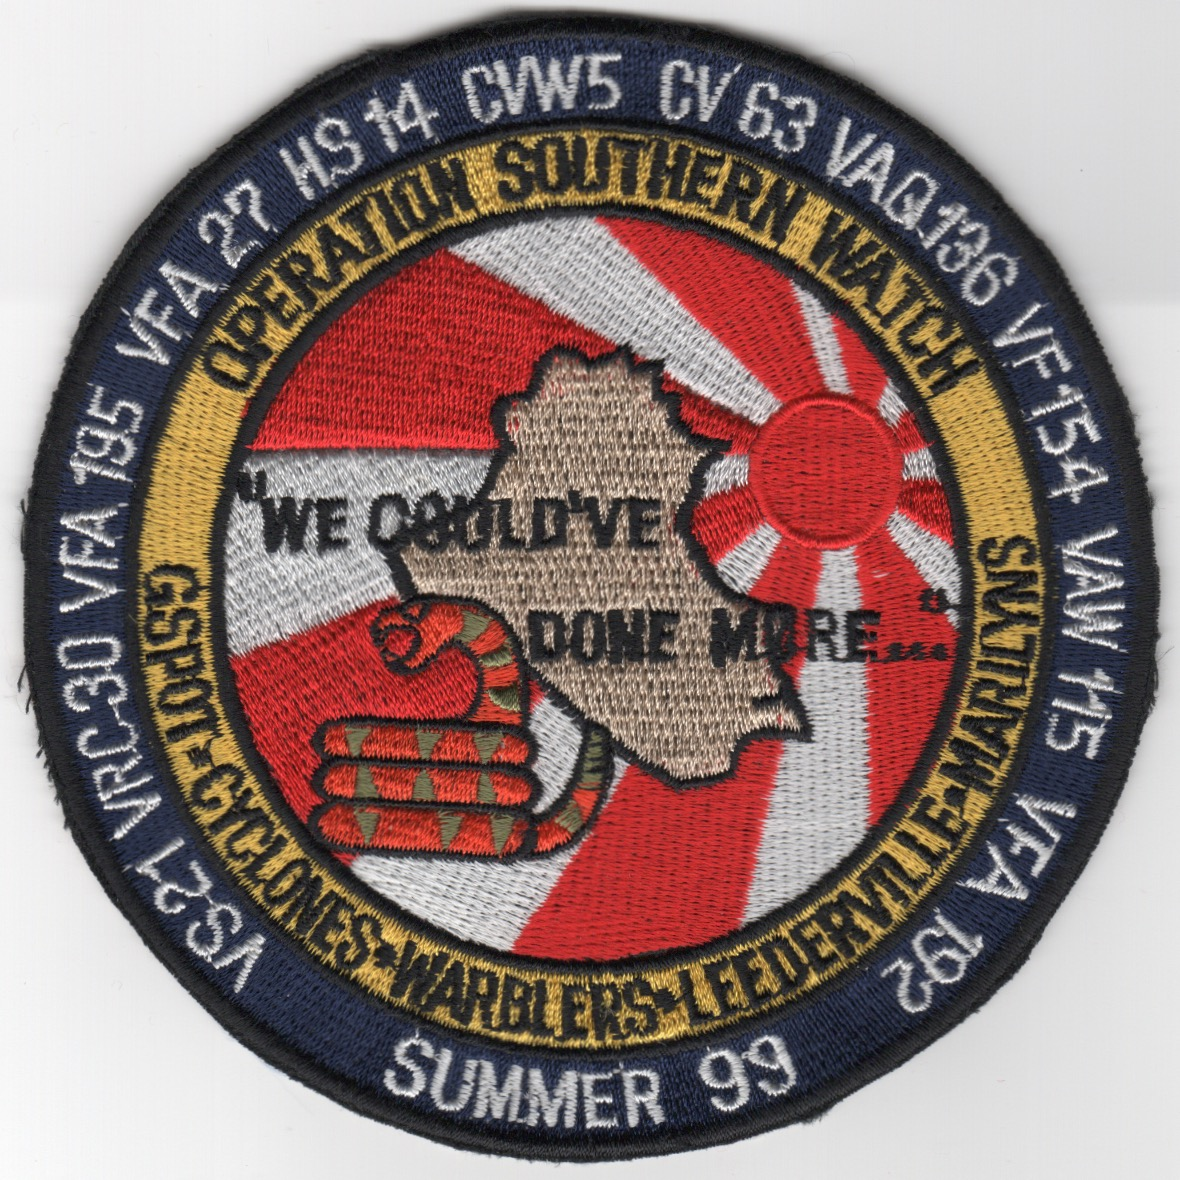 370) CV-63 1999 OSW Cruise Patch